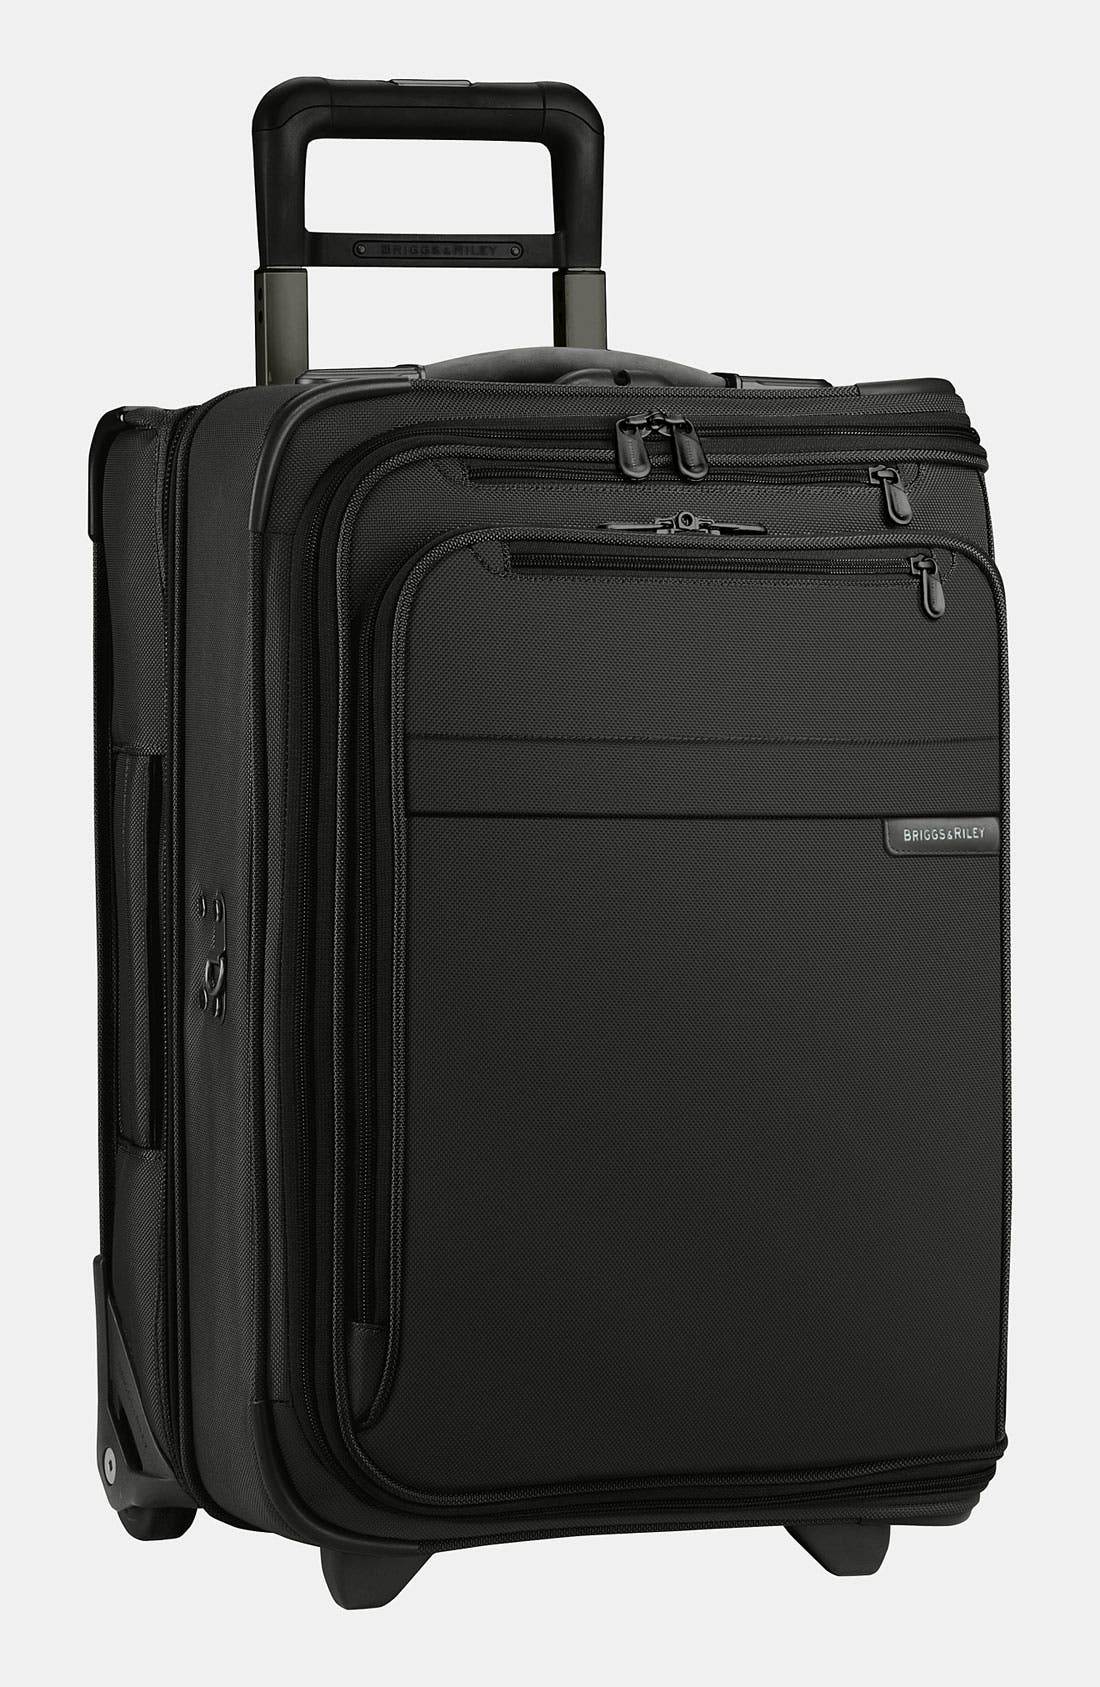 Briggs & Riley 'Baseline - Domestic' Rolling Carry-On Garment Bag (22 Inch)